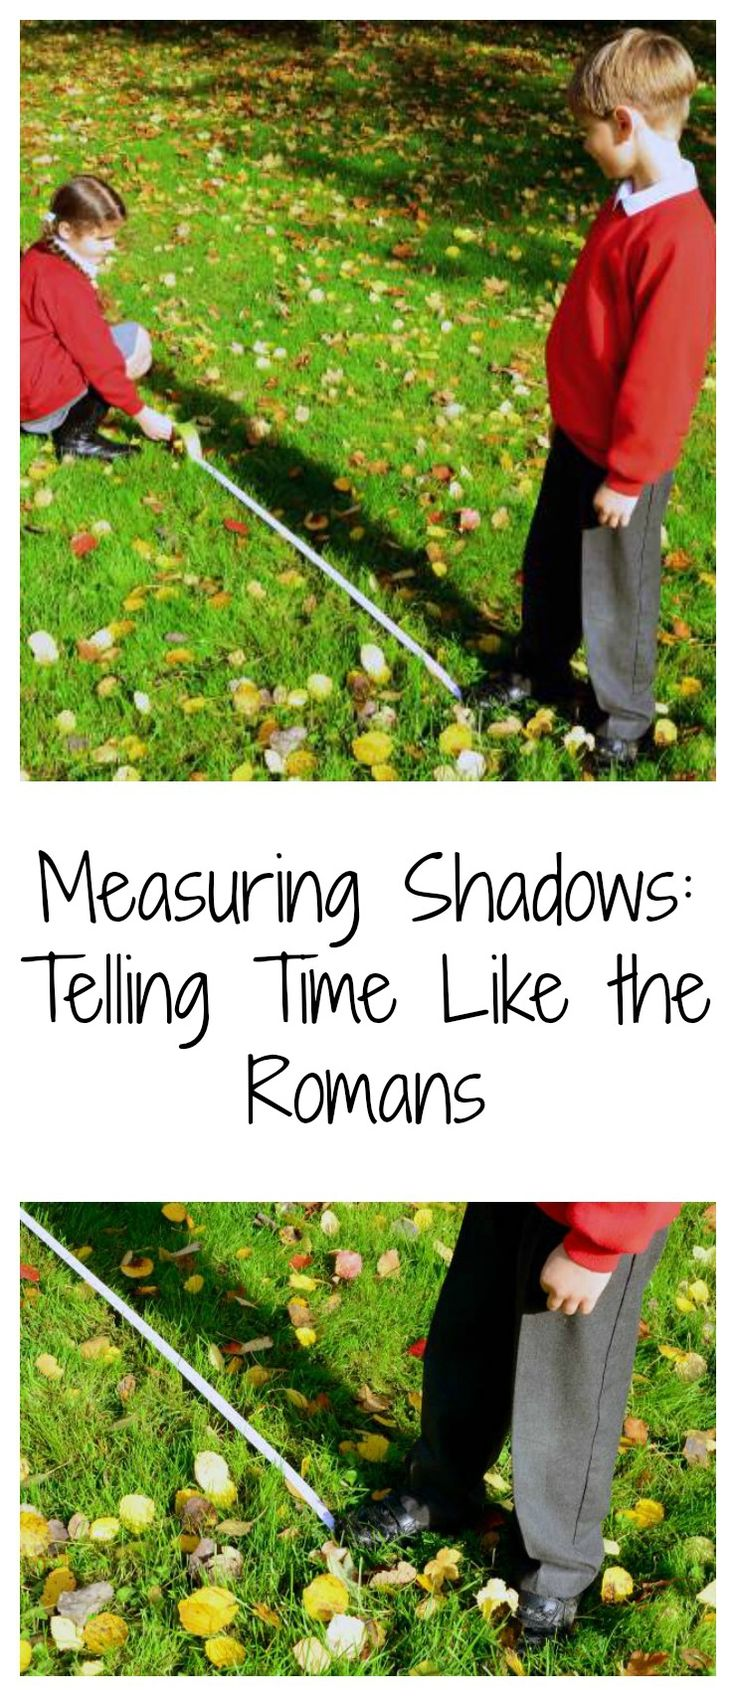 Measuring shadows: telling time like the Romans. A fun science activity with a downloadable worksheet #LearningIsFun